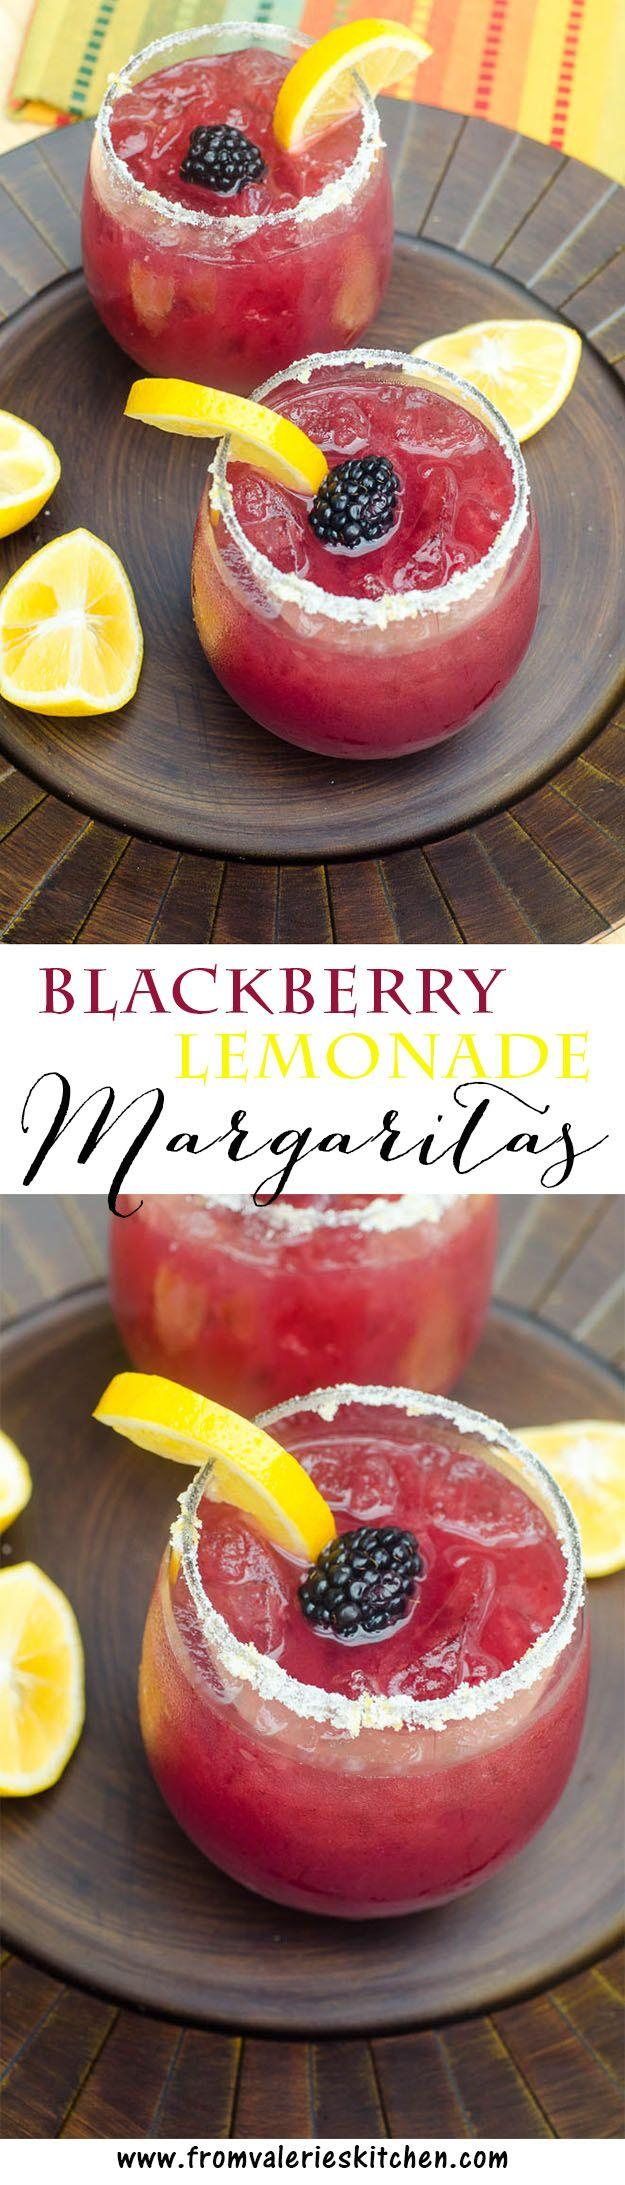 Düğün - Blackberry Lemonade Margaritas